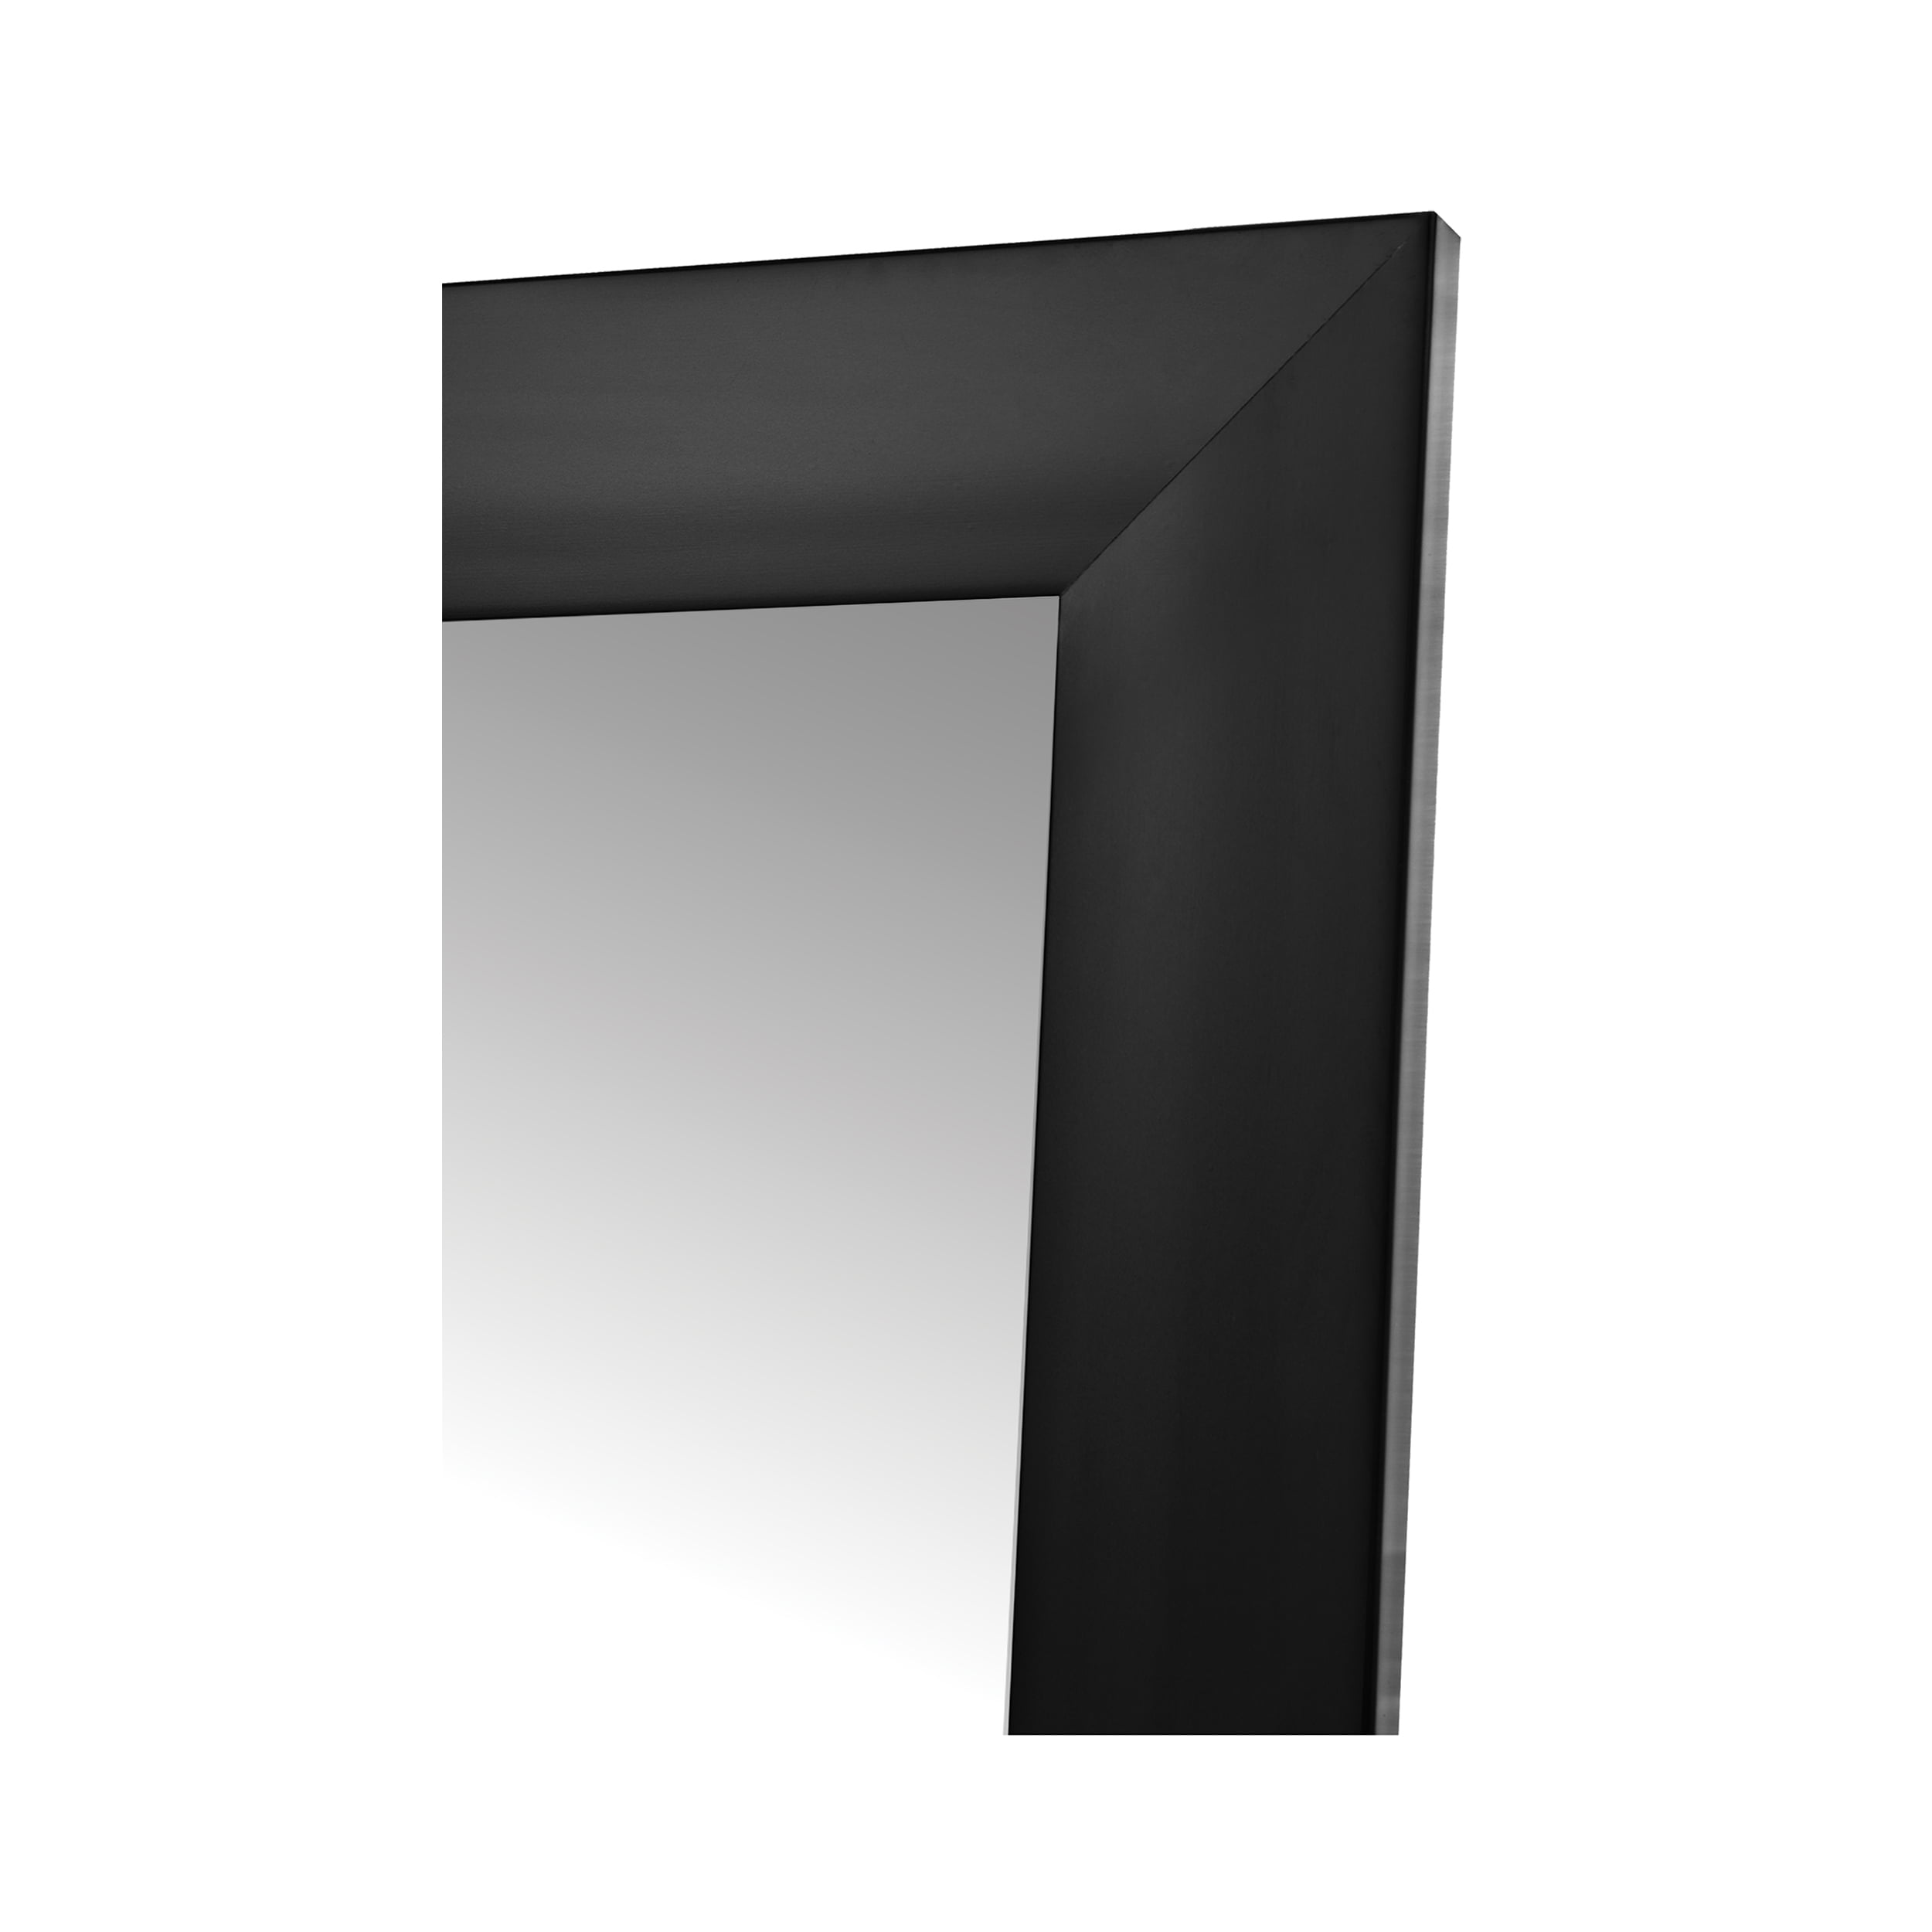 "Fornari Black Non-Beveled Full Length (20"" x 60"")"